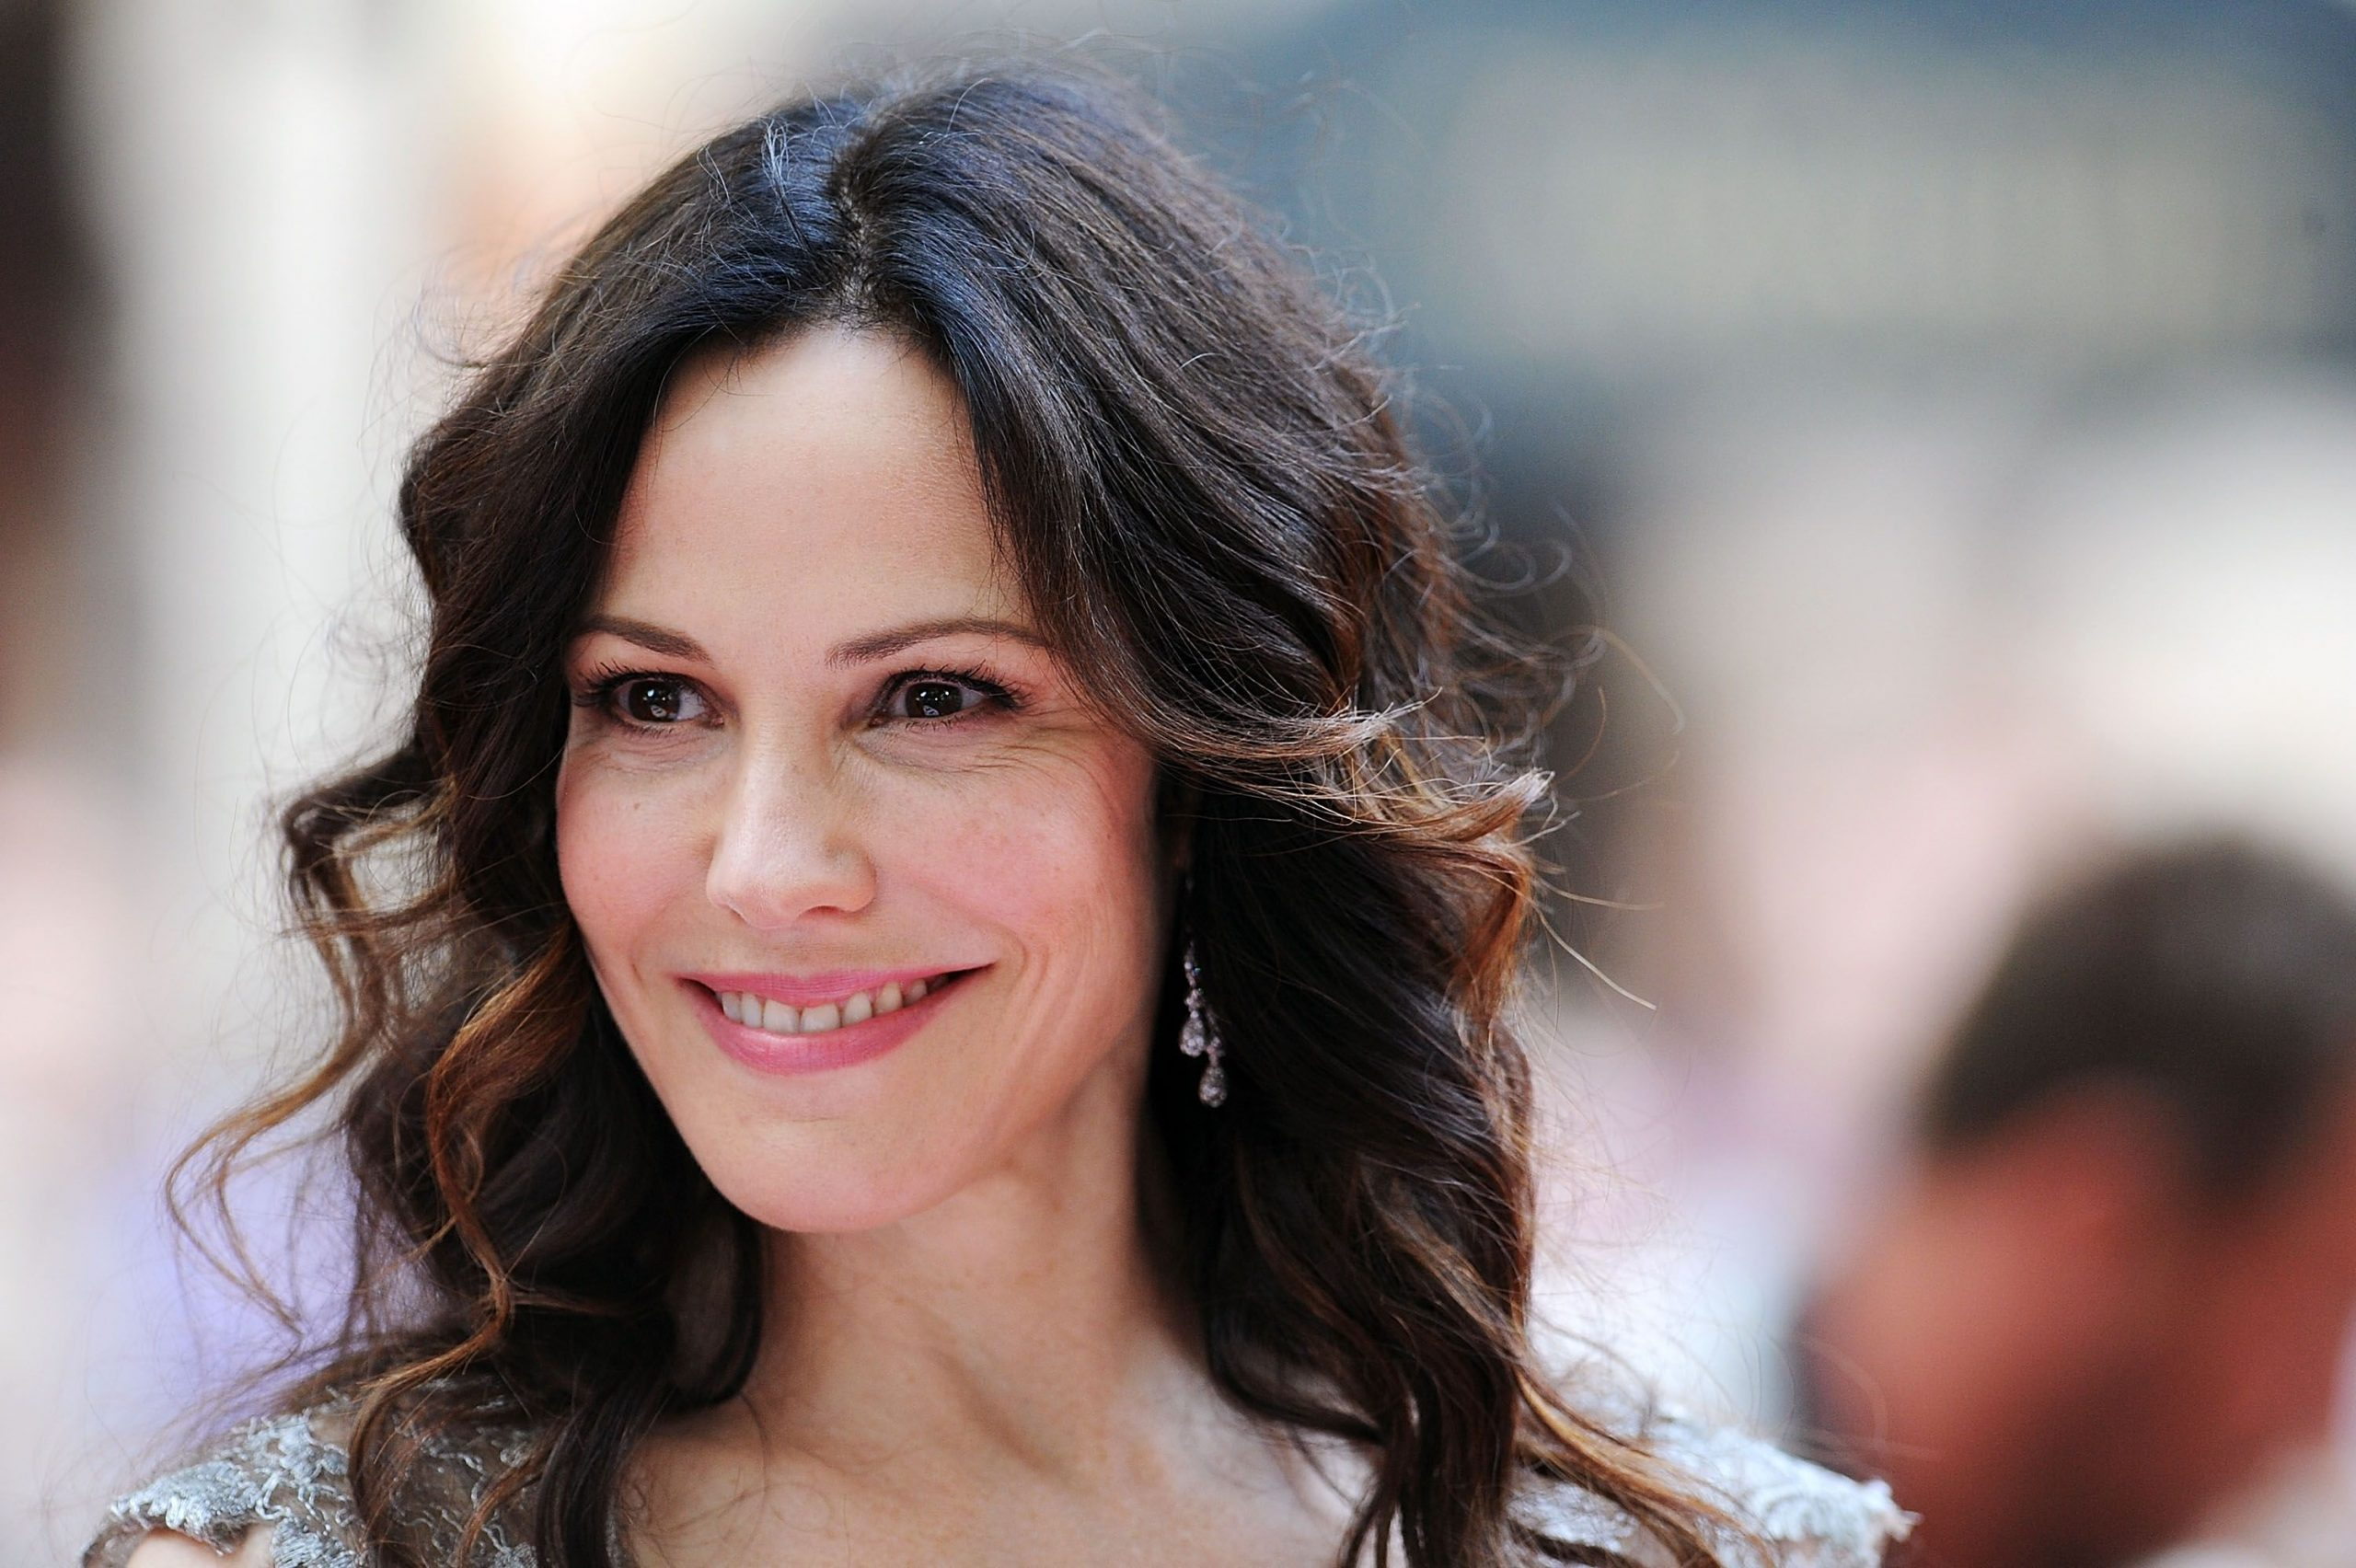 Mary-Louise Parker Wiki, Bio, Age, Net Worth, and Other